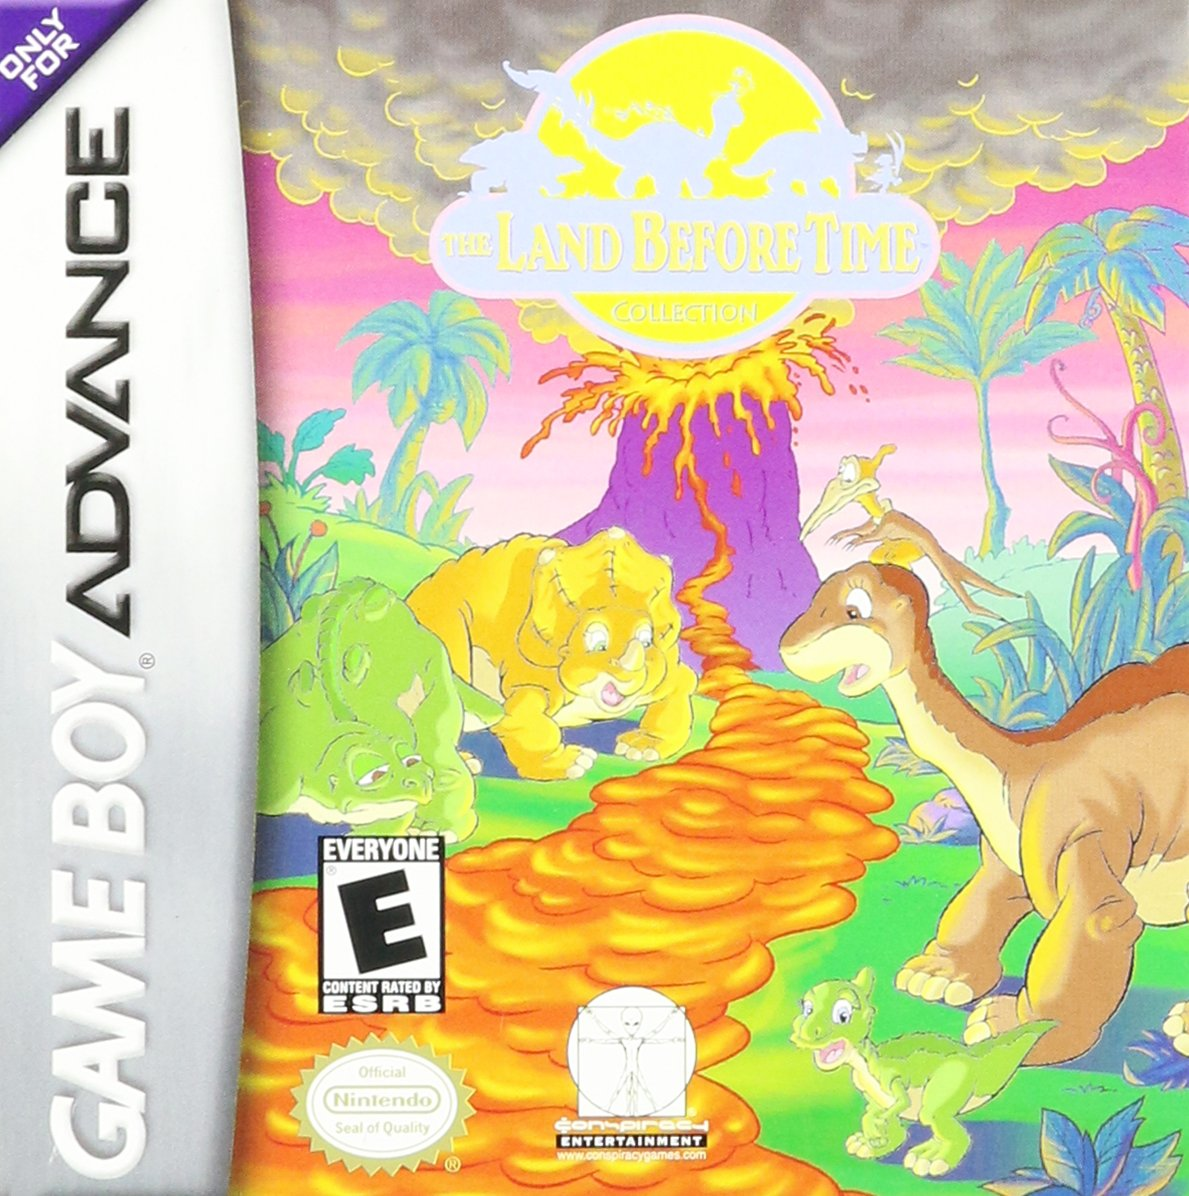 the land before time game boy advance game boy advance